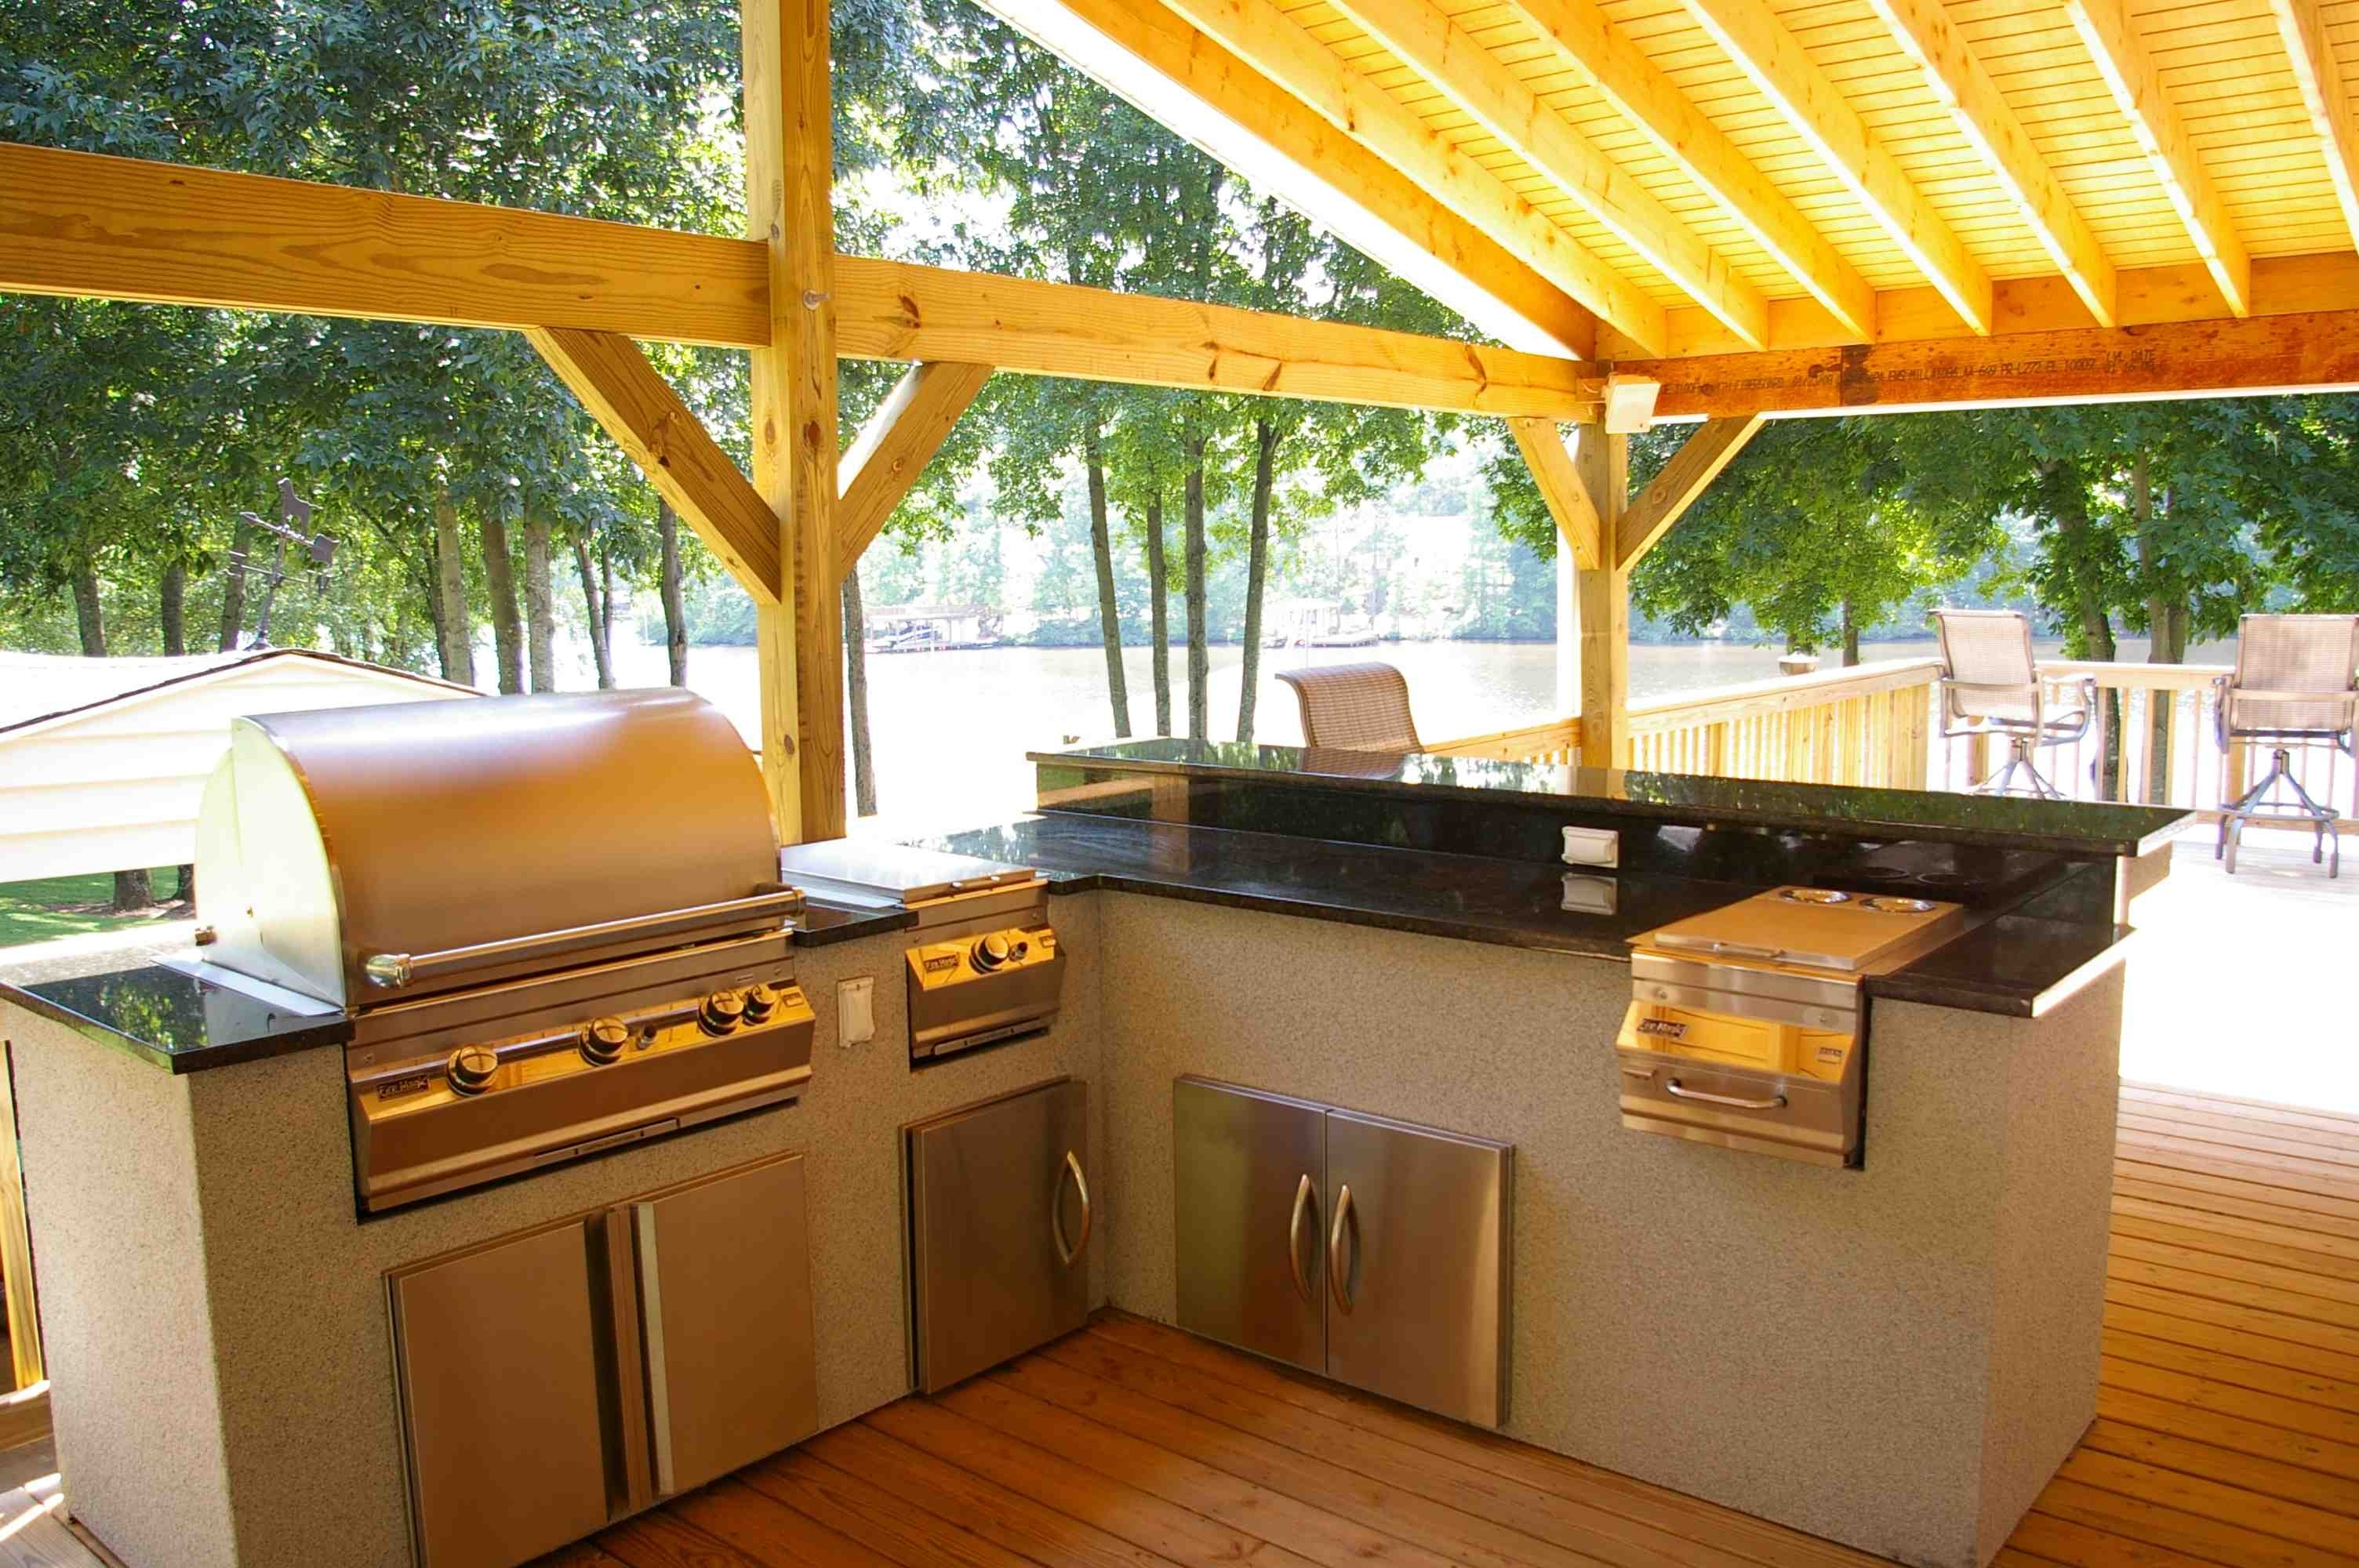 Outdoor Kitchen Outdoor Living With Archadeck Of Chicagoland Intended For Outdoor Kitchen Wood Countertops Nice Outdoor Kitchen Wood Countertops Inspiration